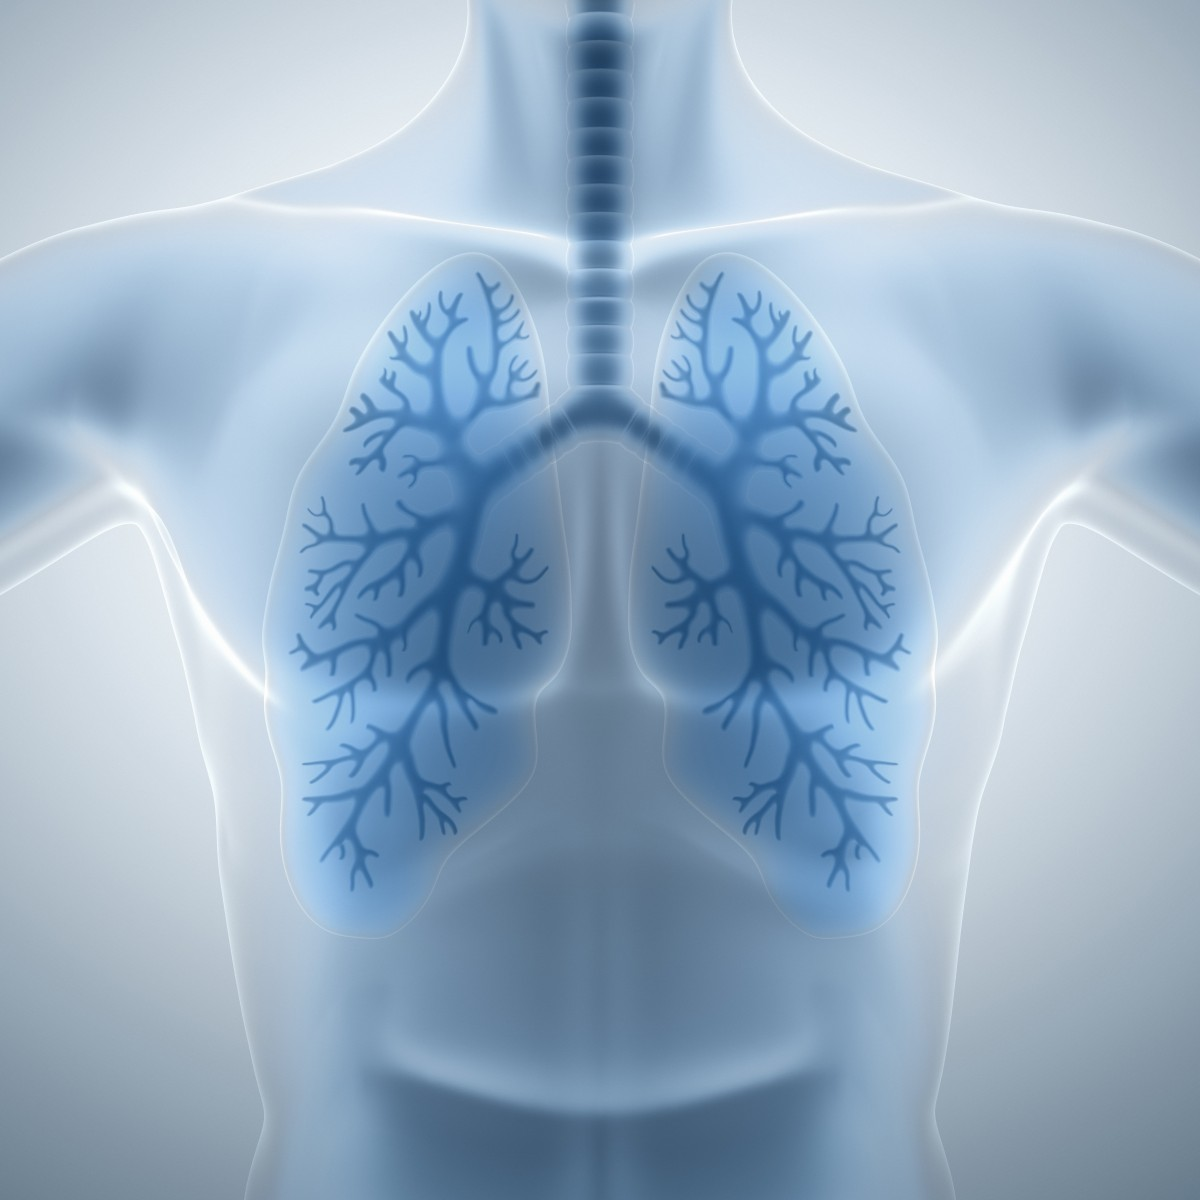 Prolonged Use of Macrolides Improved Non-CF Bronchiectasis Patients' Quality of Life in Study